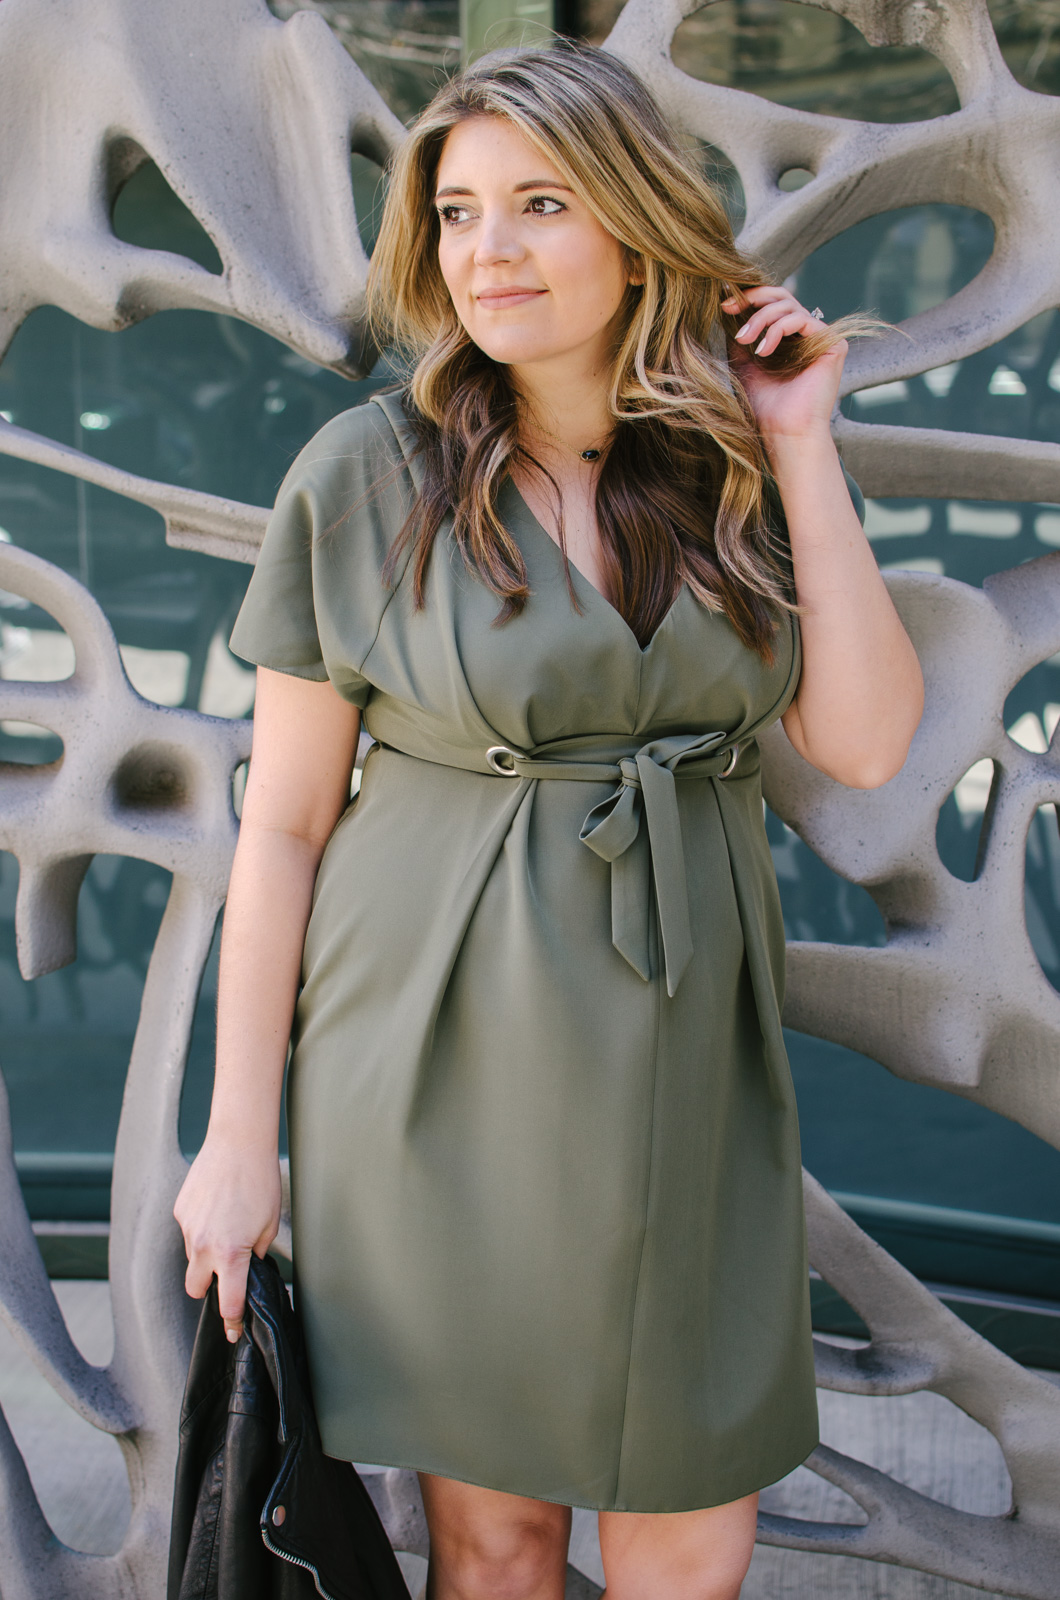 maternity date night outfit - what to wear date night pregnancy | See more cute maternity outfits at bylaurenm.com!